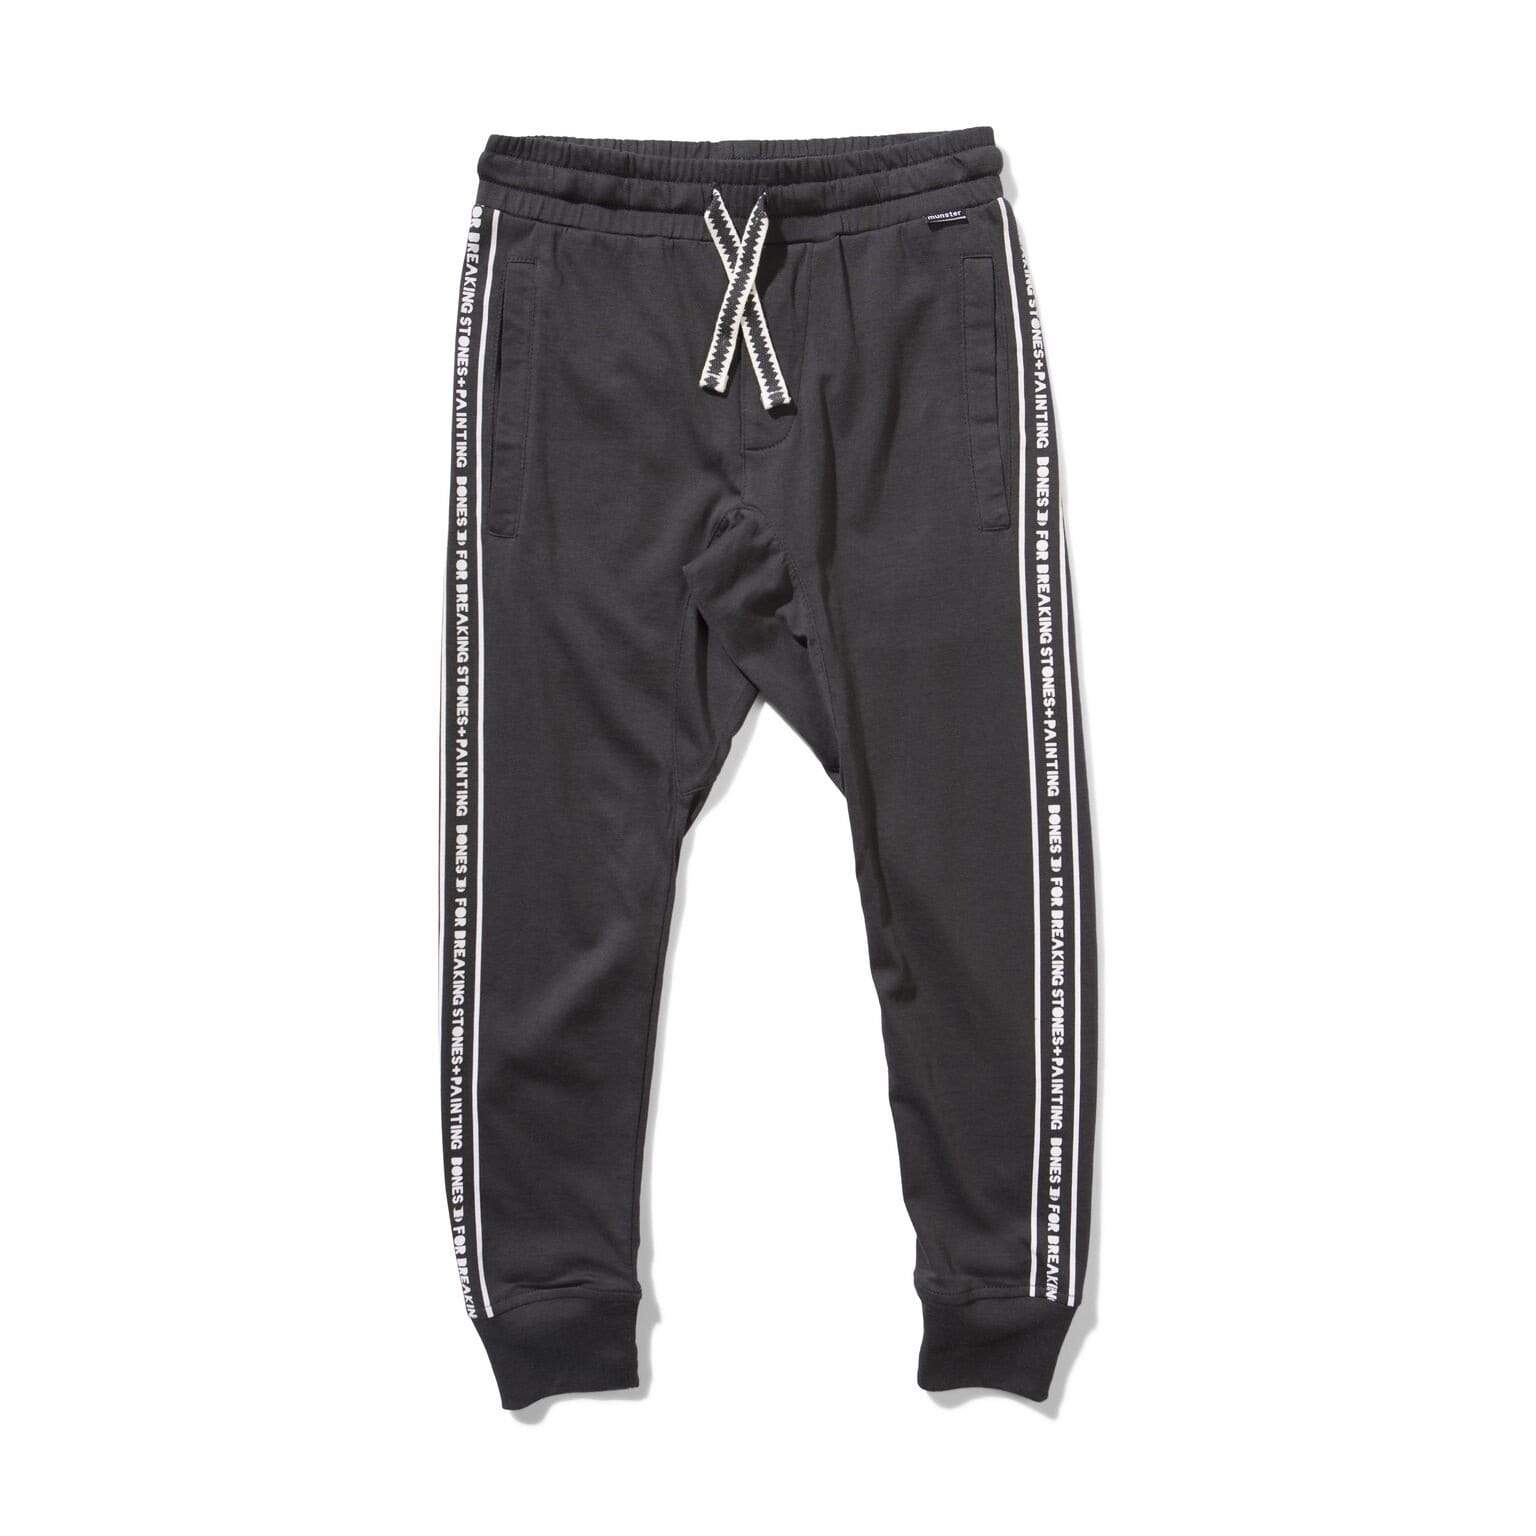 Munster Pants Stones Pant - Soft Black